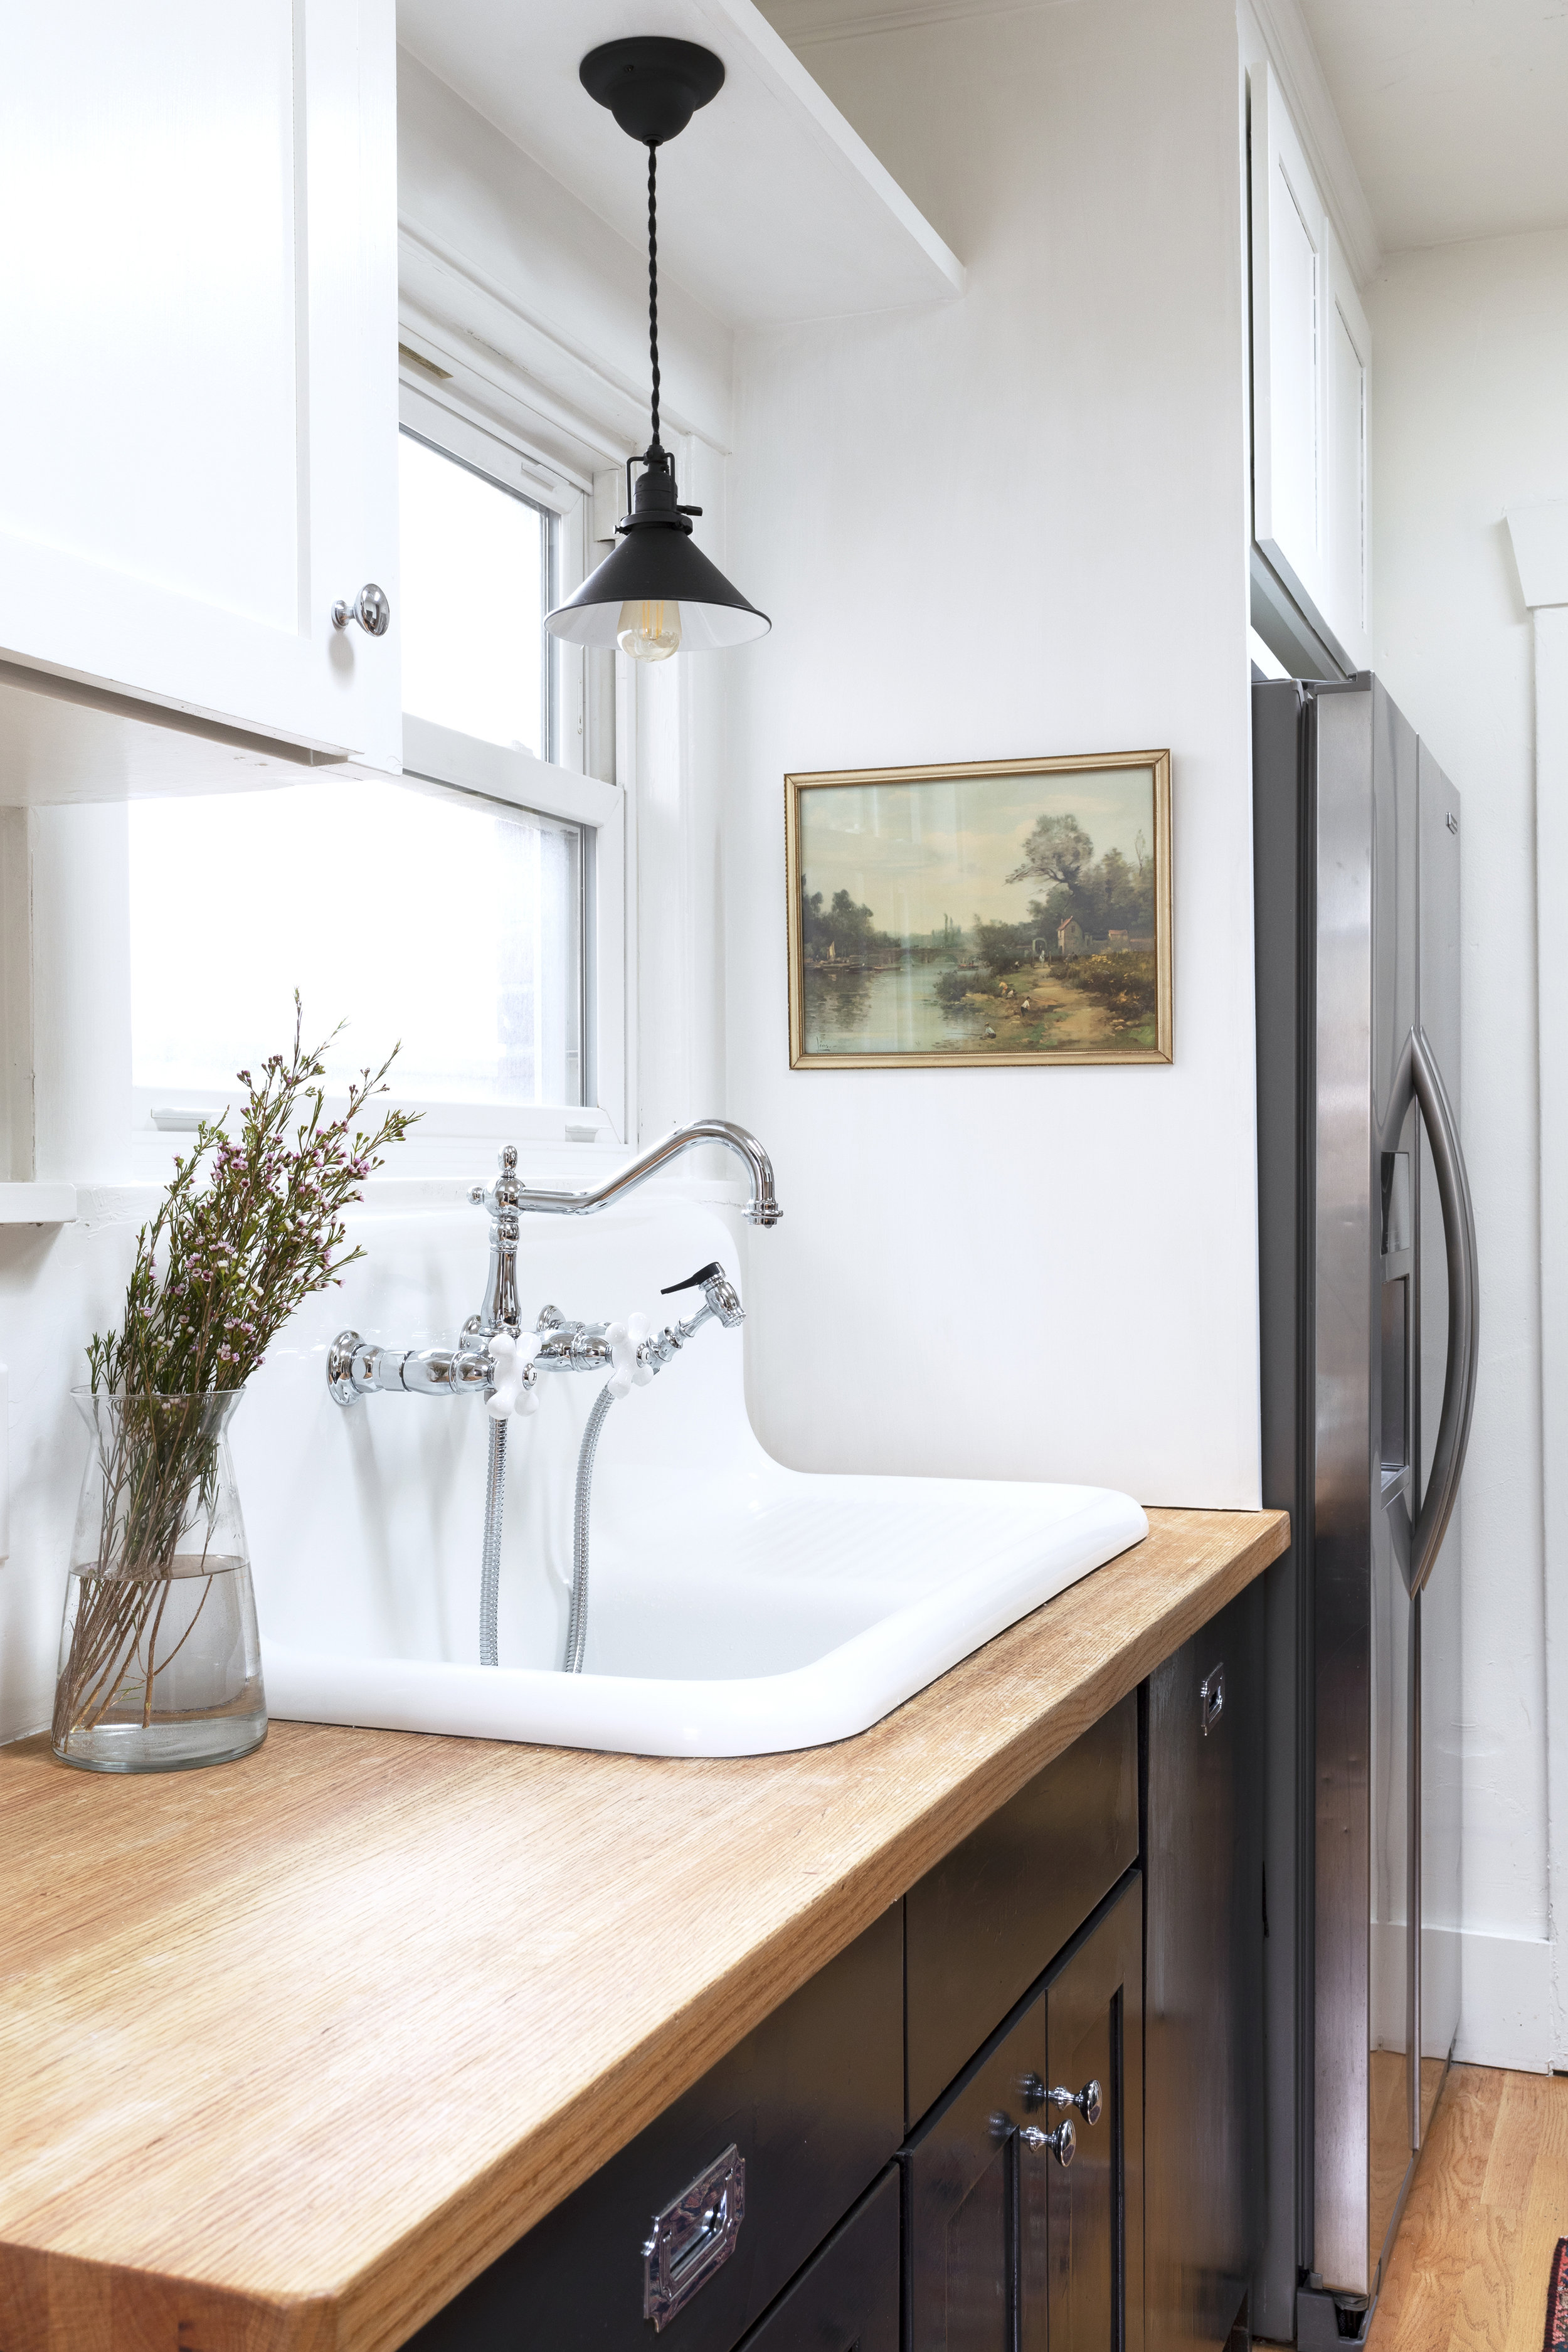 Our Favorite White Paint Color For Kitchens Cabinets The Grit And Polish